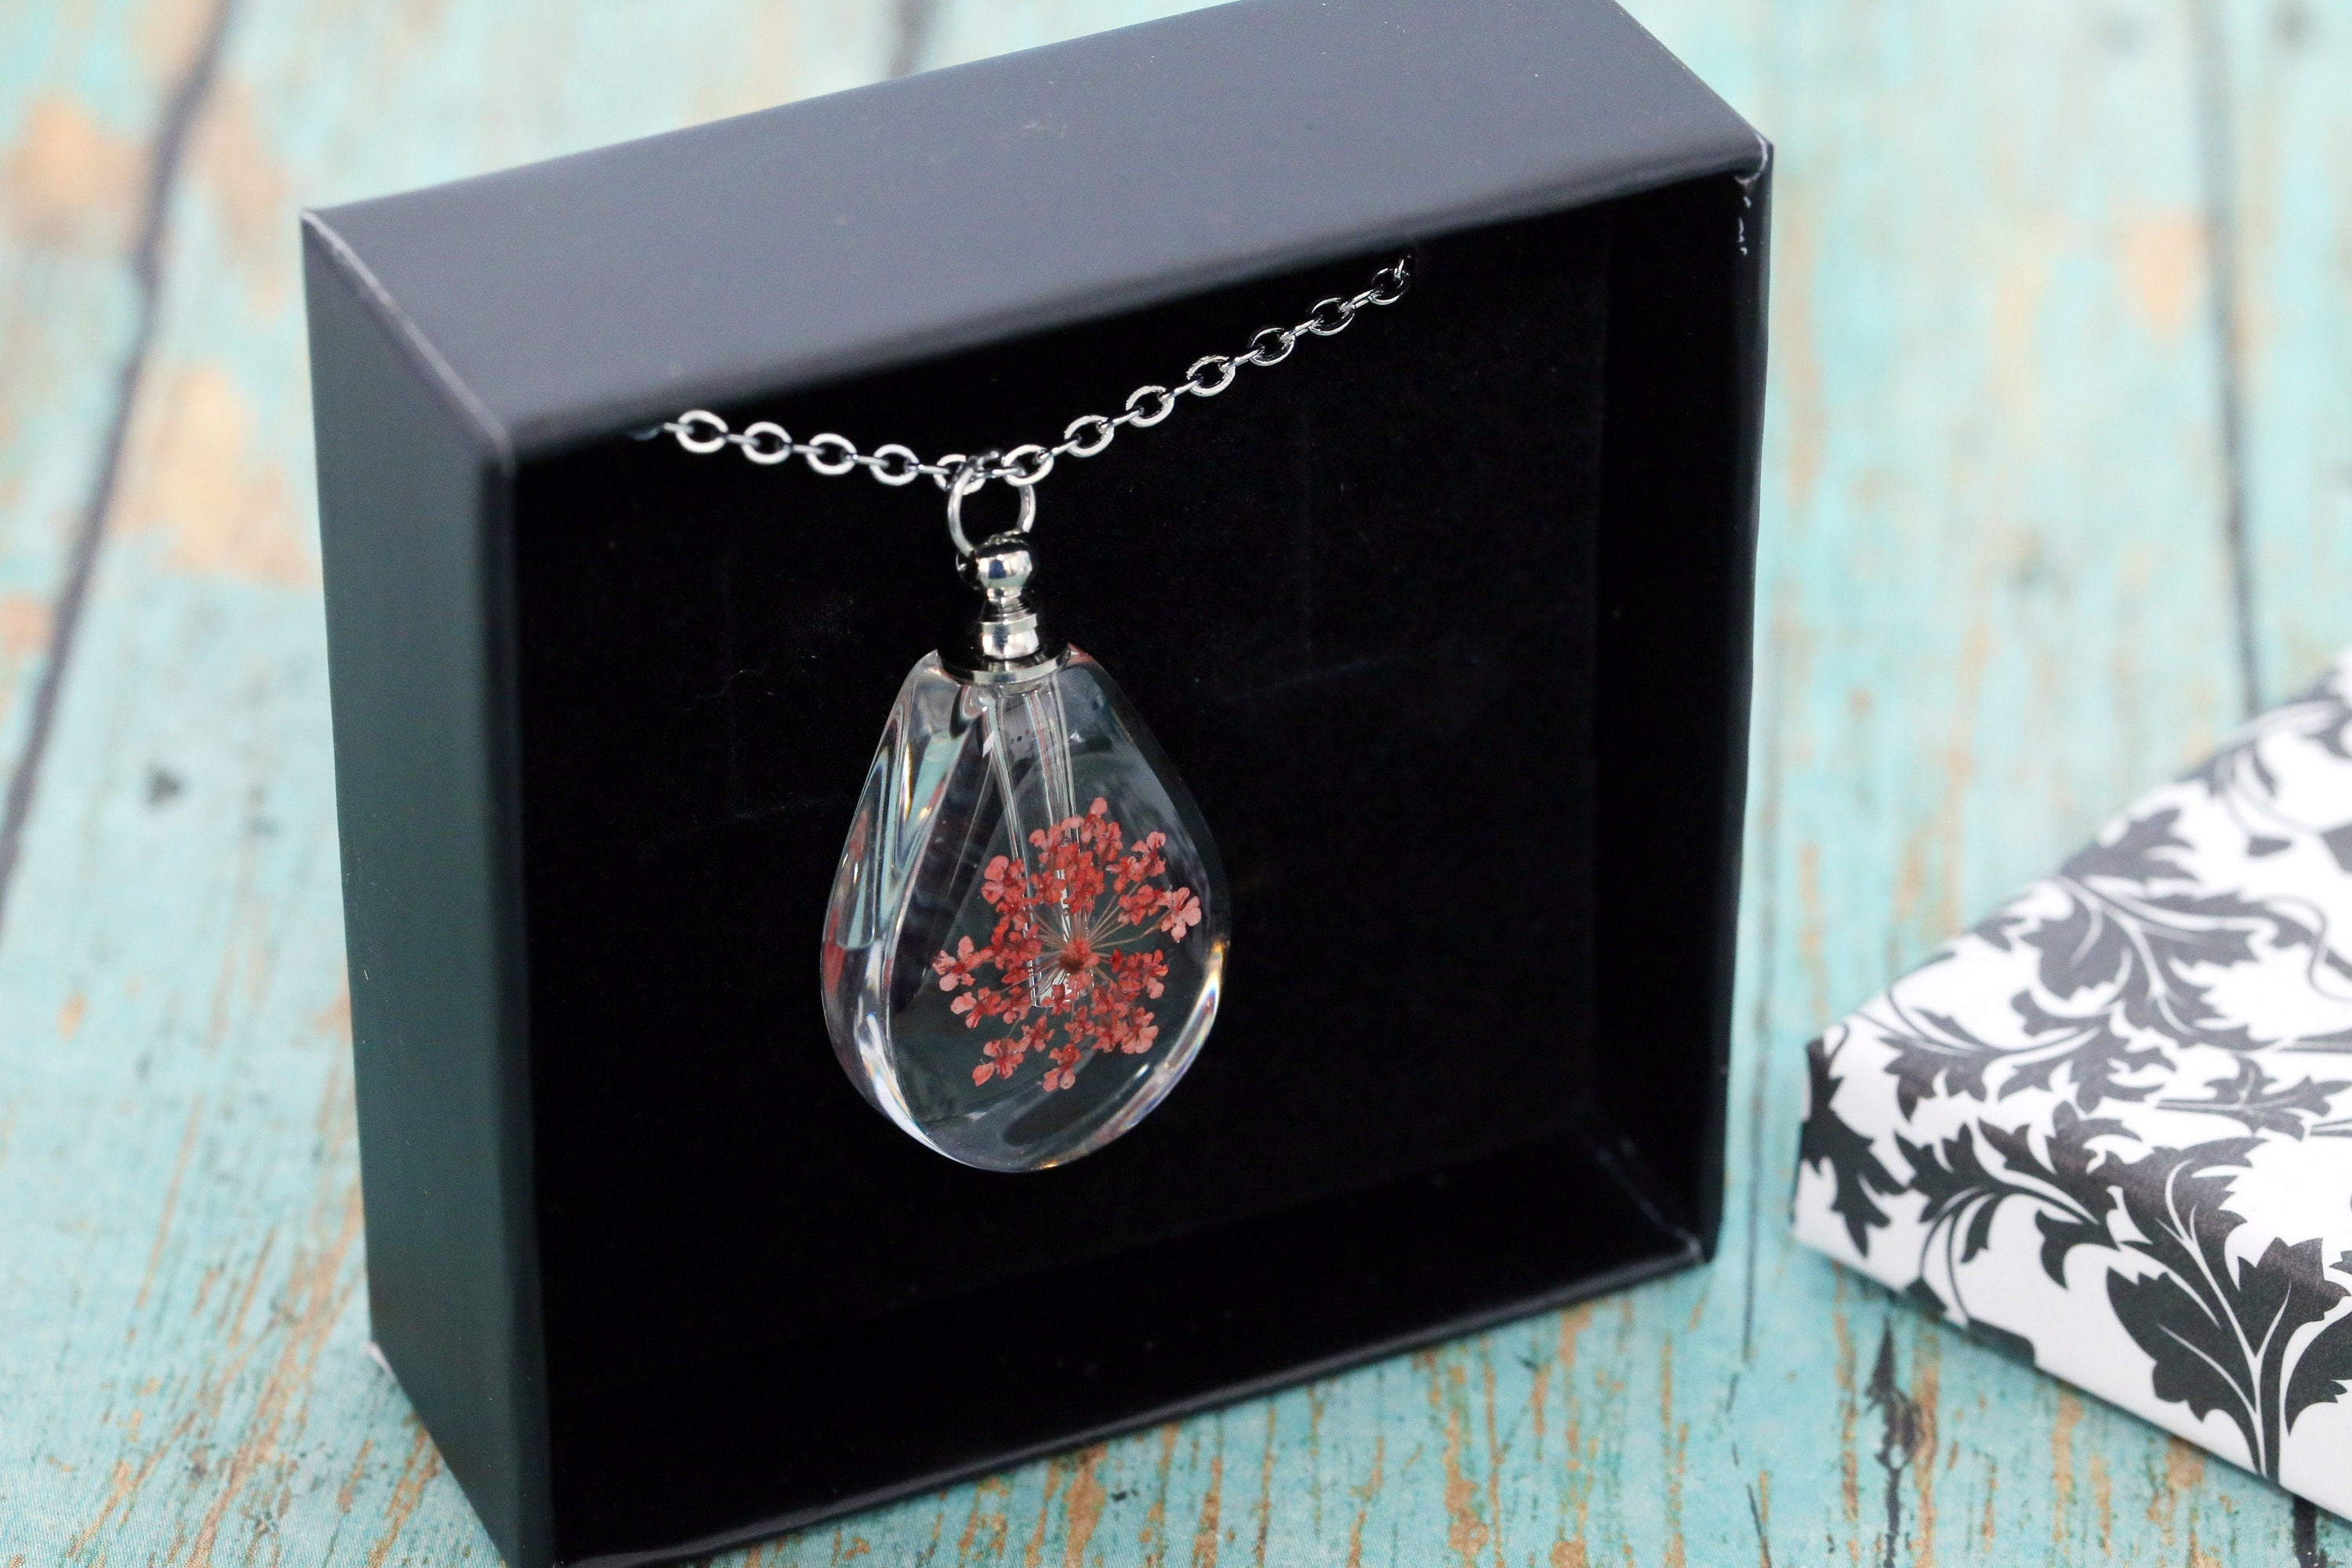 Stainless and Resin Memorial Teardrop Urn Pendant with Red Dried Flowers - Cremation Jewelry- Ash Necklace - Urn Necklace - Vial Necklace